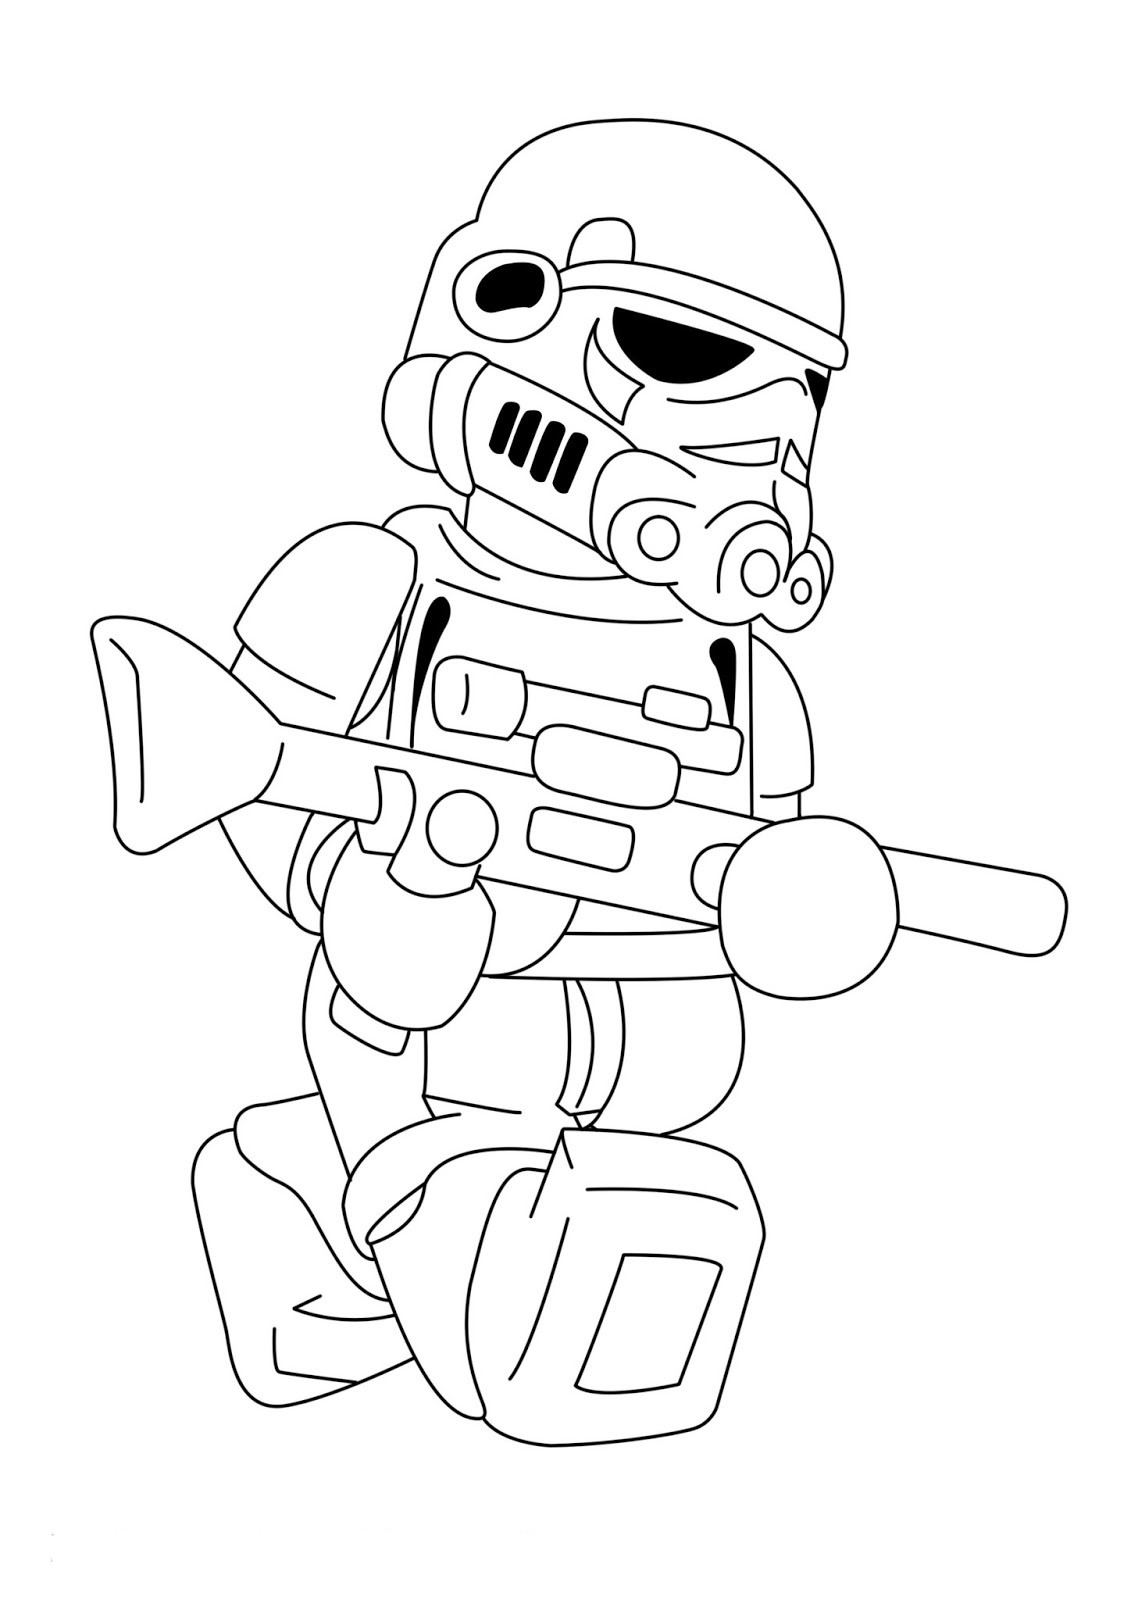 Lego Star Wars Coloring Pages  Lego Star Wars Coloring Pages Best Coloring Pages For Kids